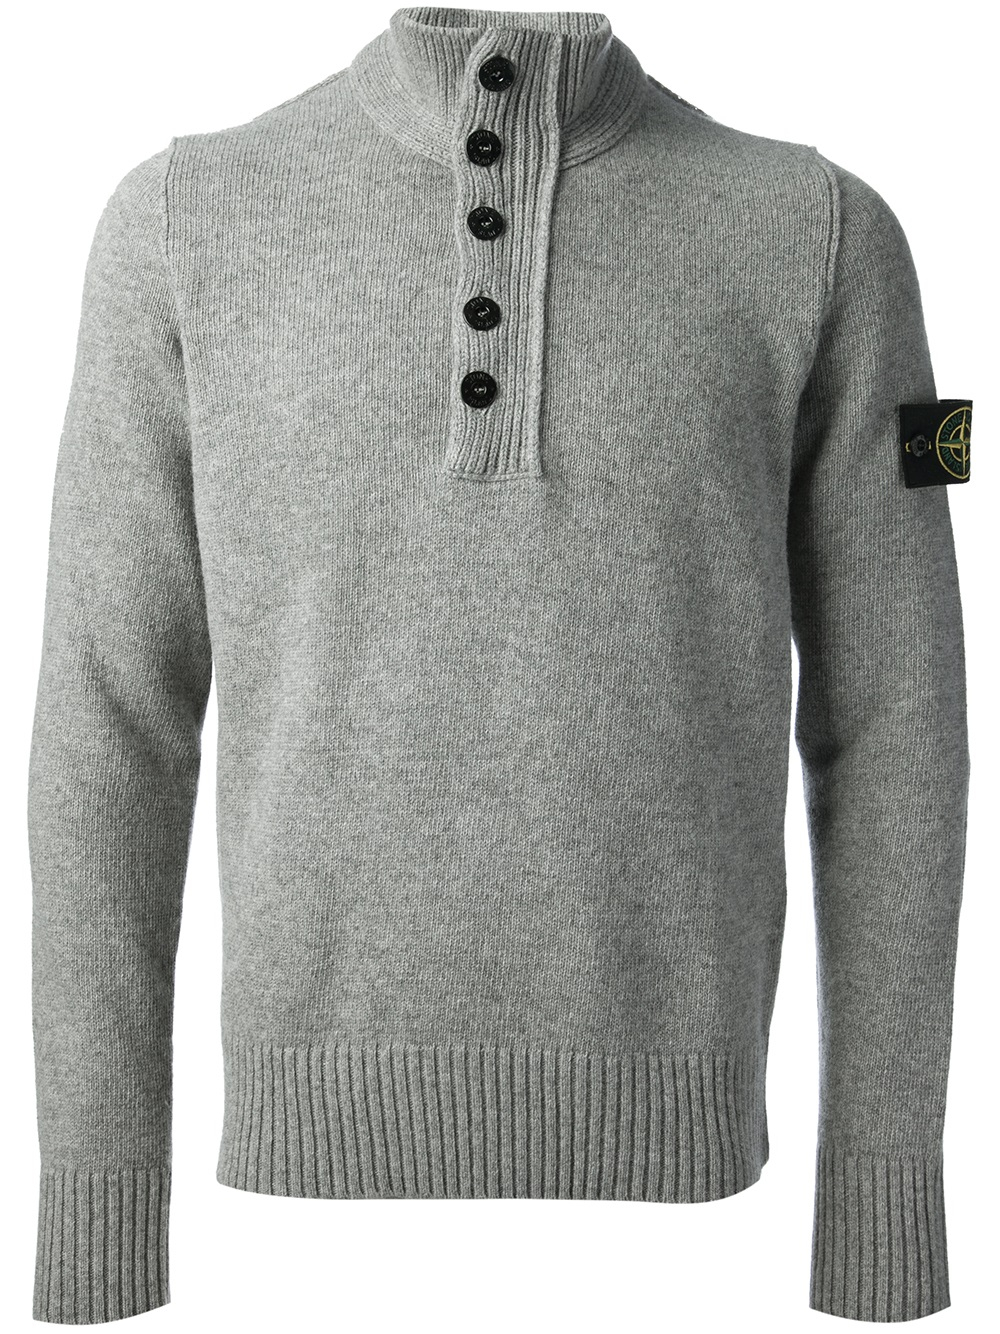 stone island button down sweater in gray for men lyst. Black Bedroom Furniture Sets. Home Design Ideas